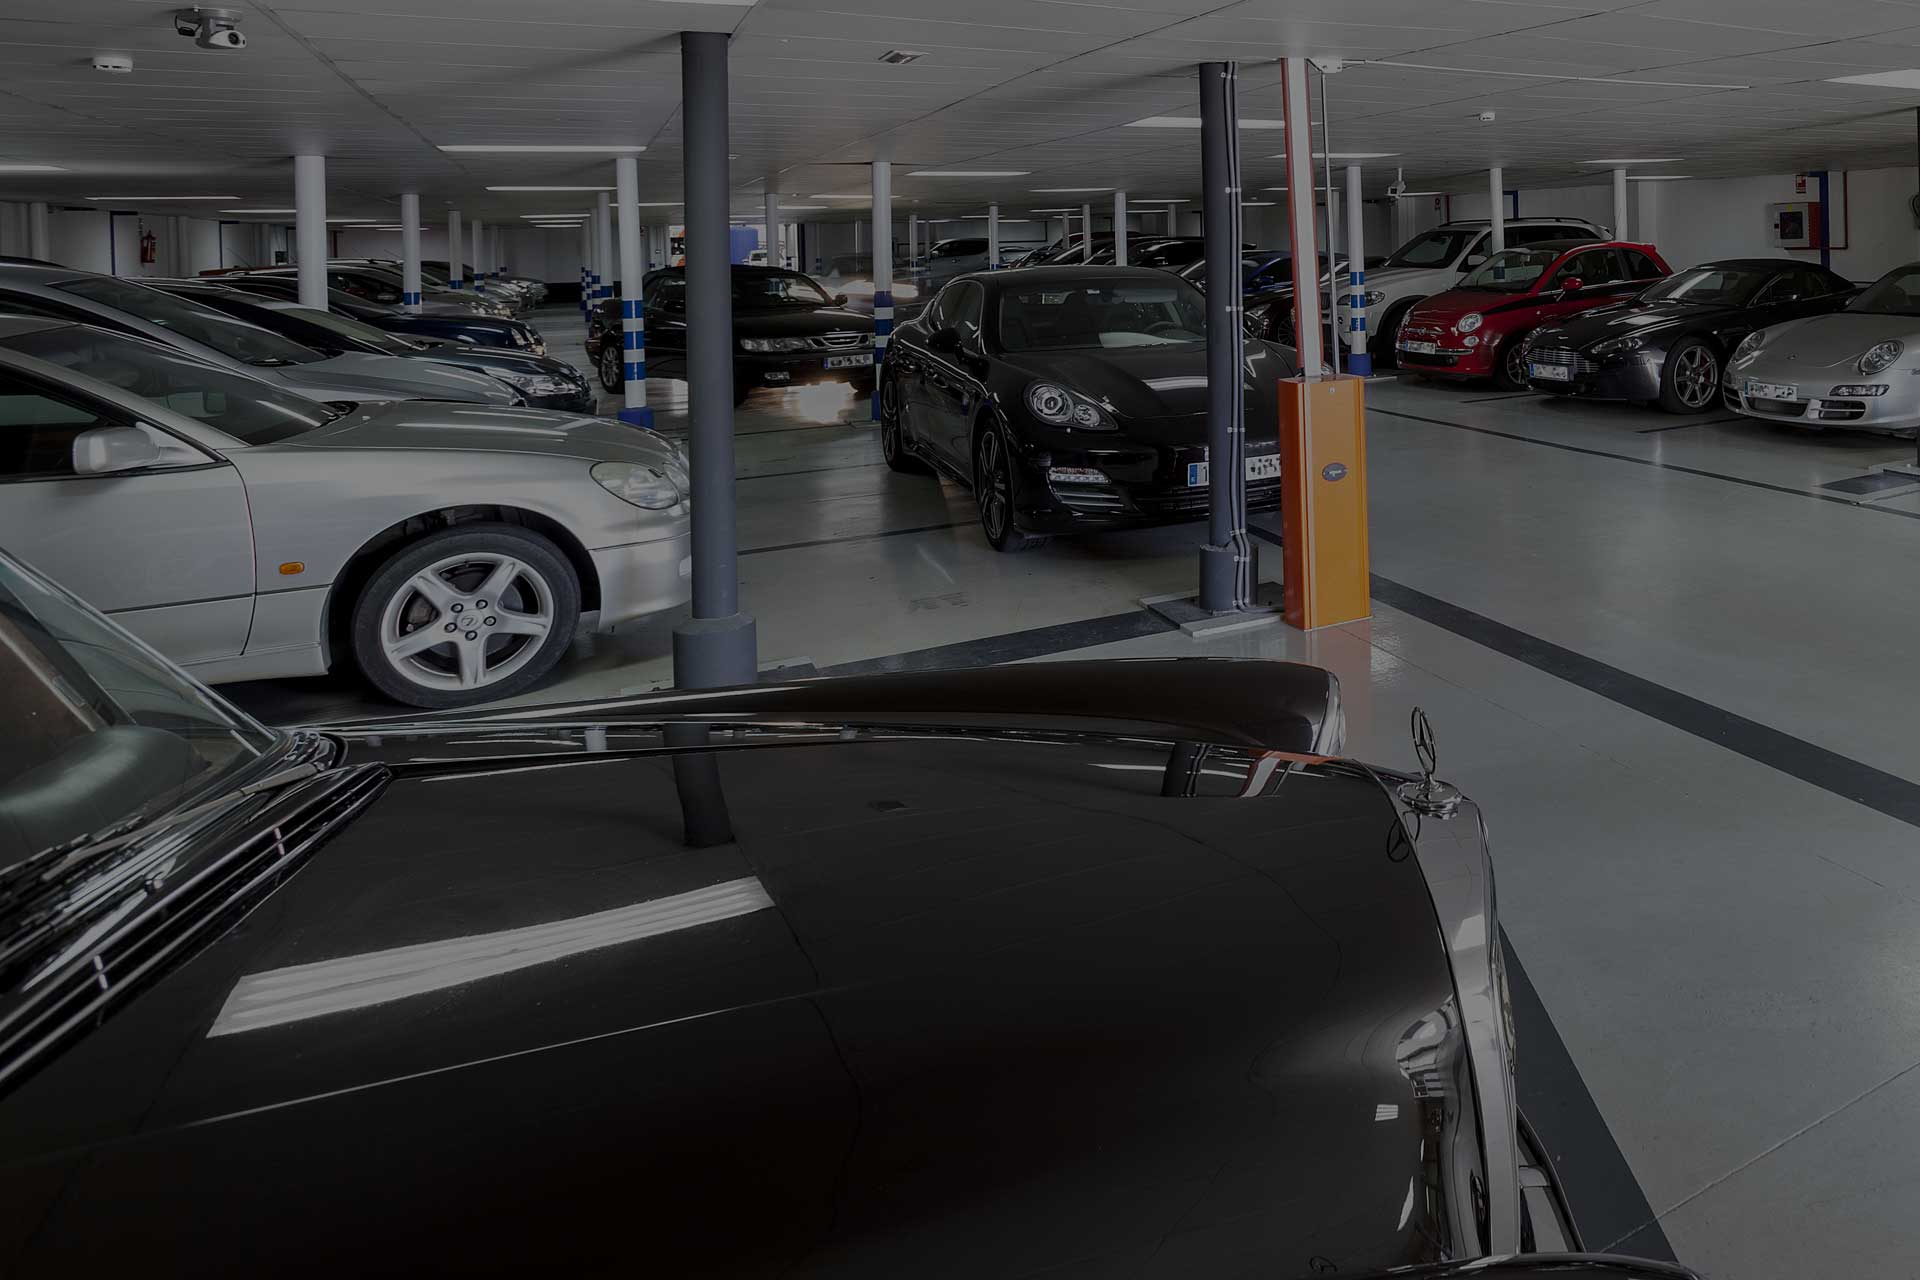 cars in malaga airport garages